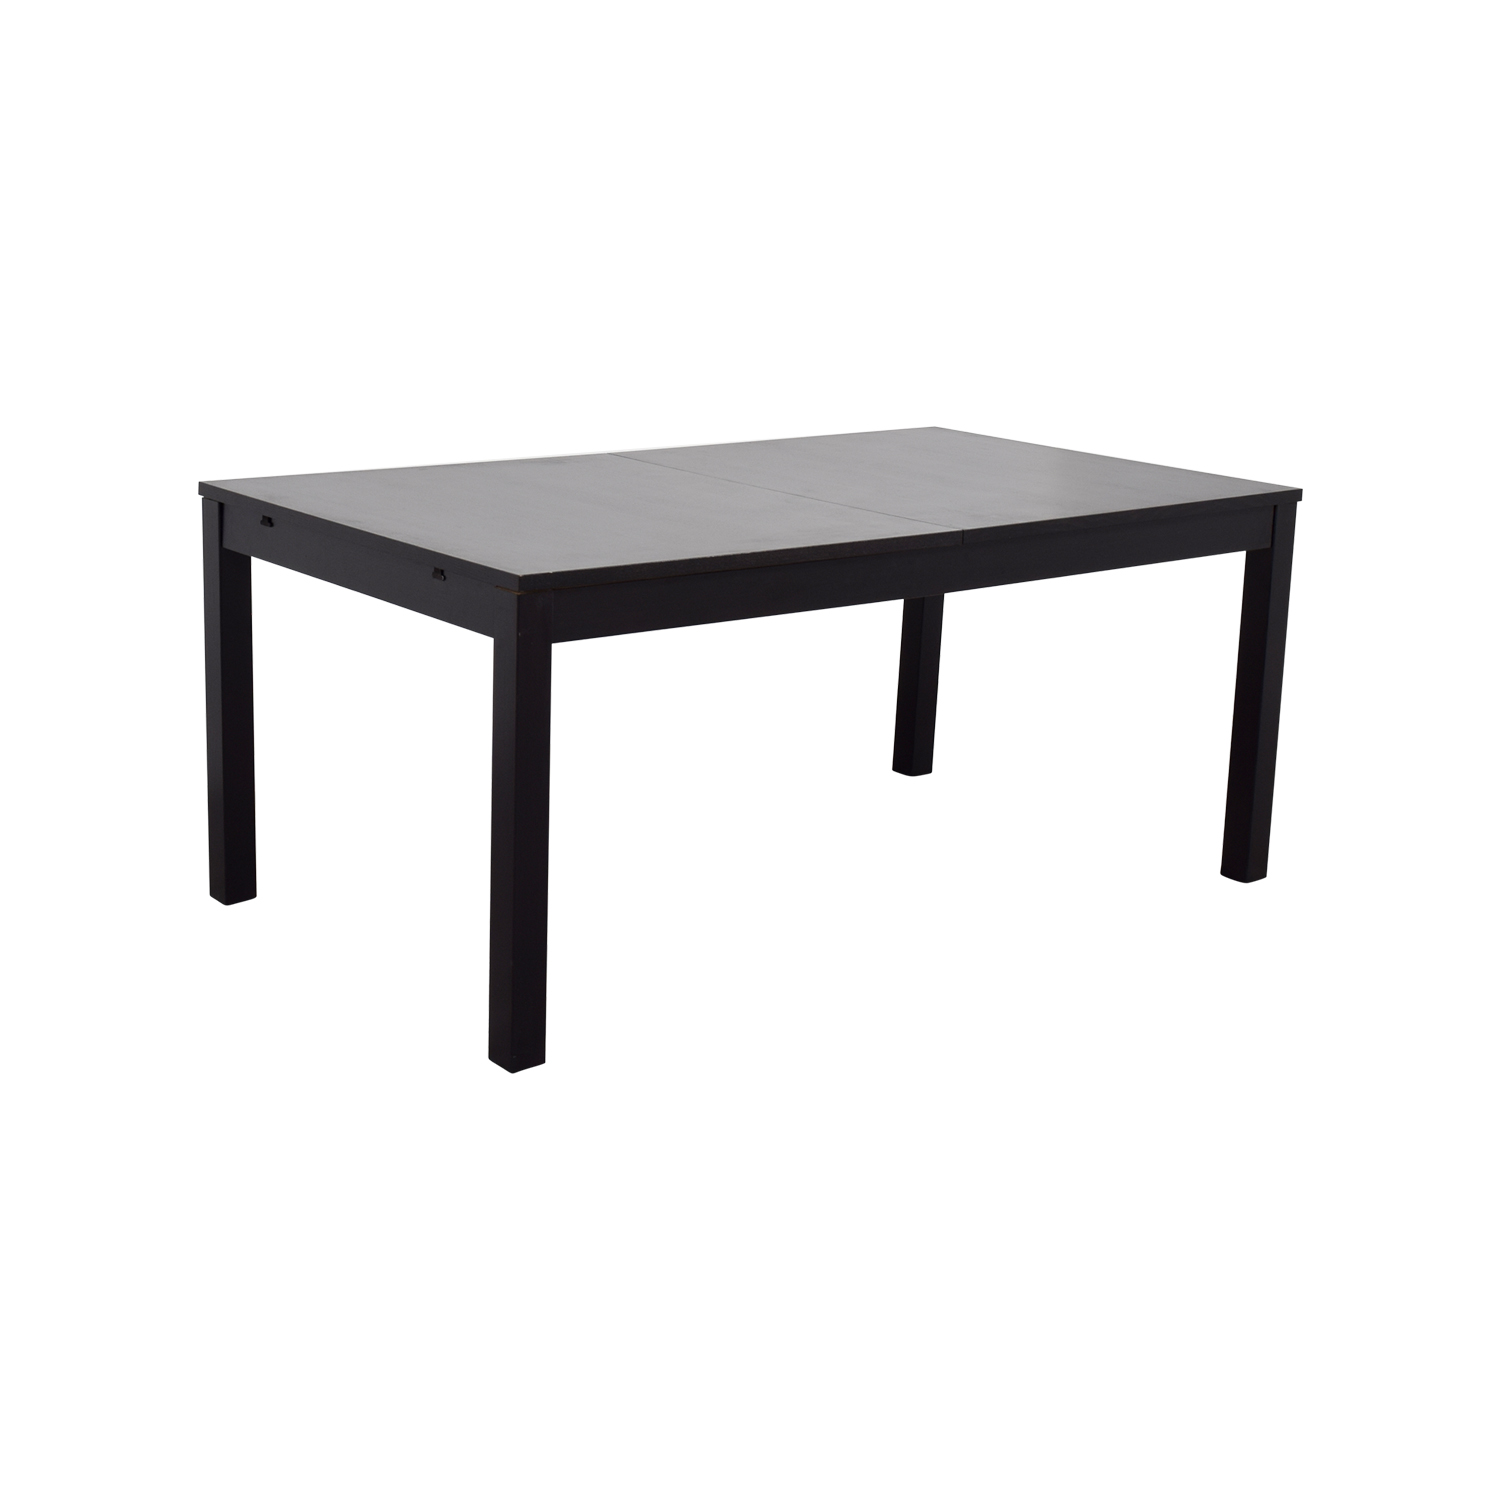 54 off ikea ikea extendable dining table tables. Black Bedroom Furniture Sets. Home Design Ideas